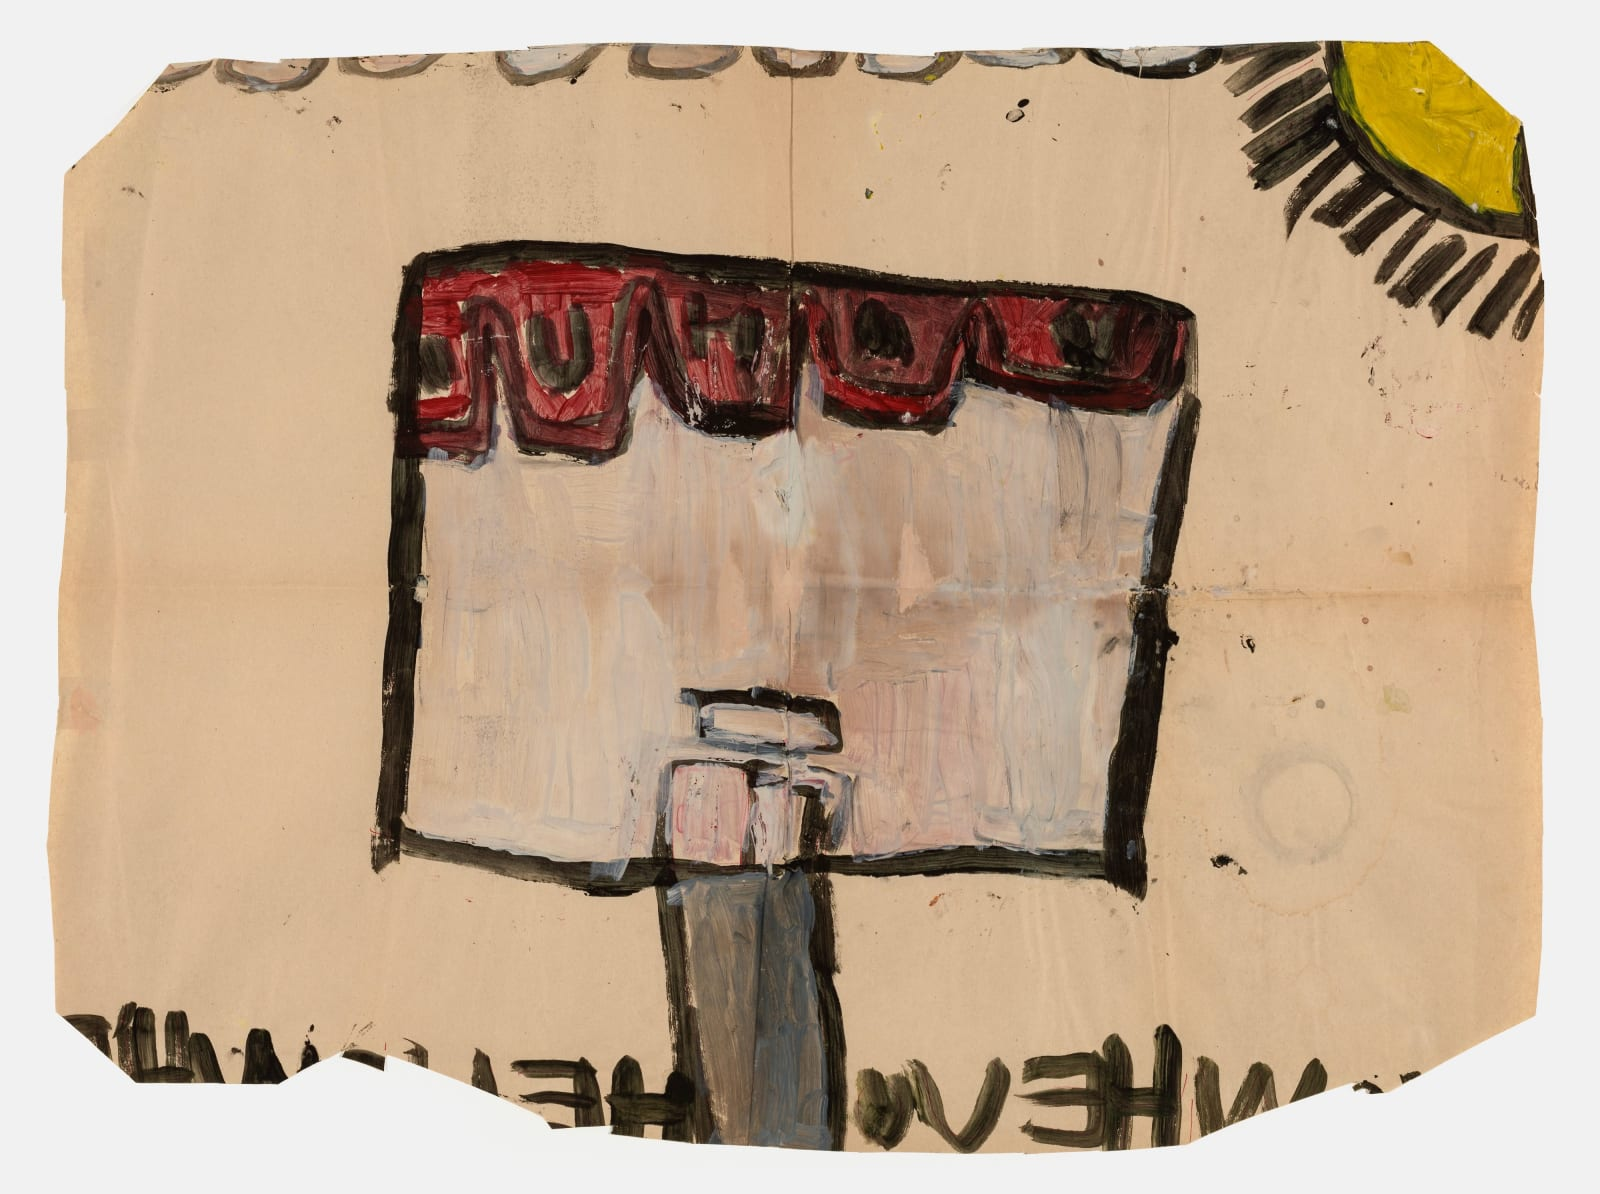 Untitled (No. 13), 1972-1980 Tempera on paper 21 x 28.5 in (53.3 x 72.4 cm) (LM 103) SOLD